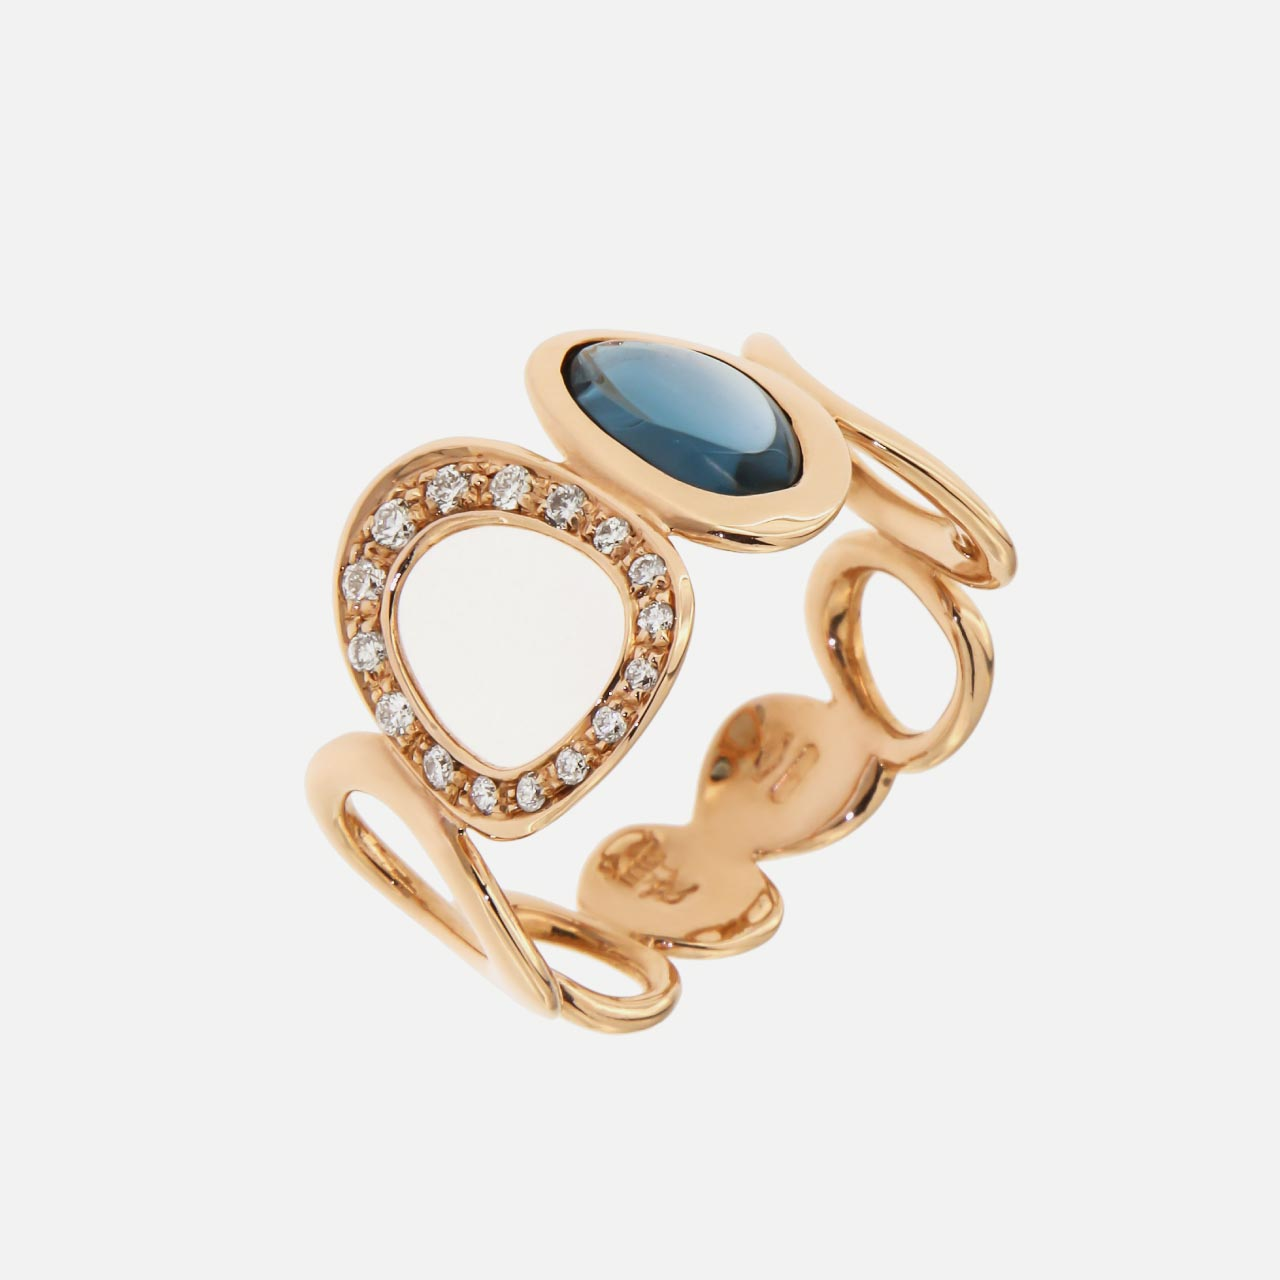 ring rugiada's collection